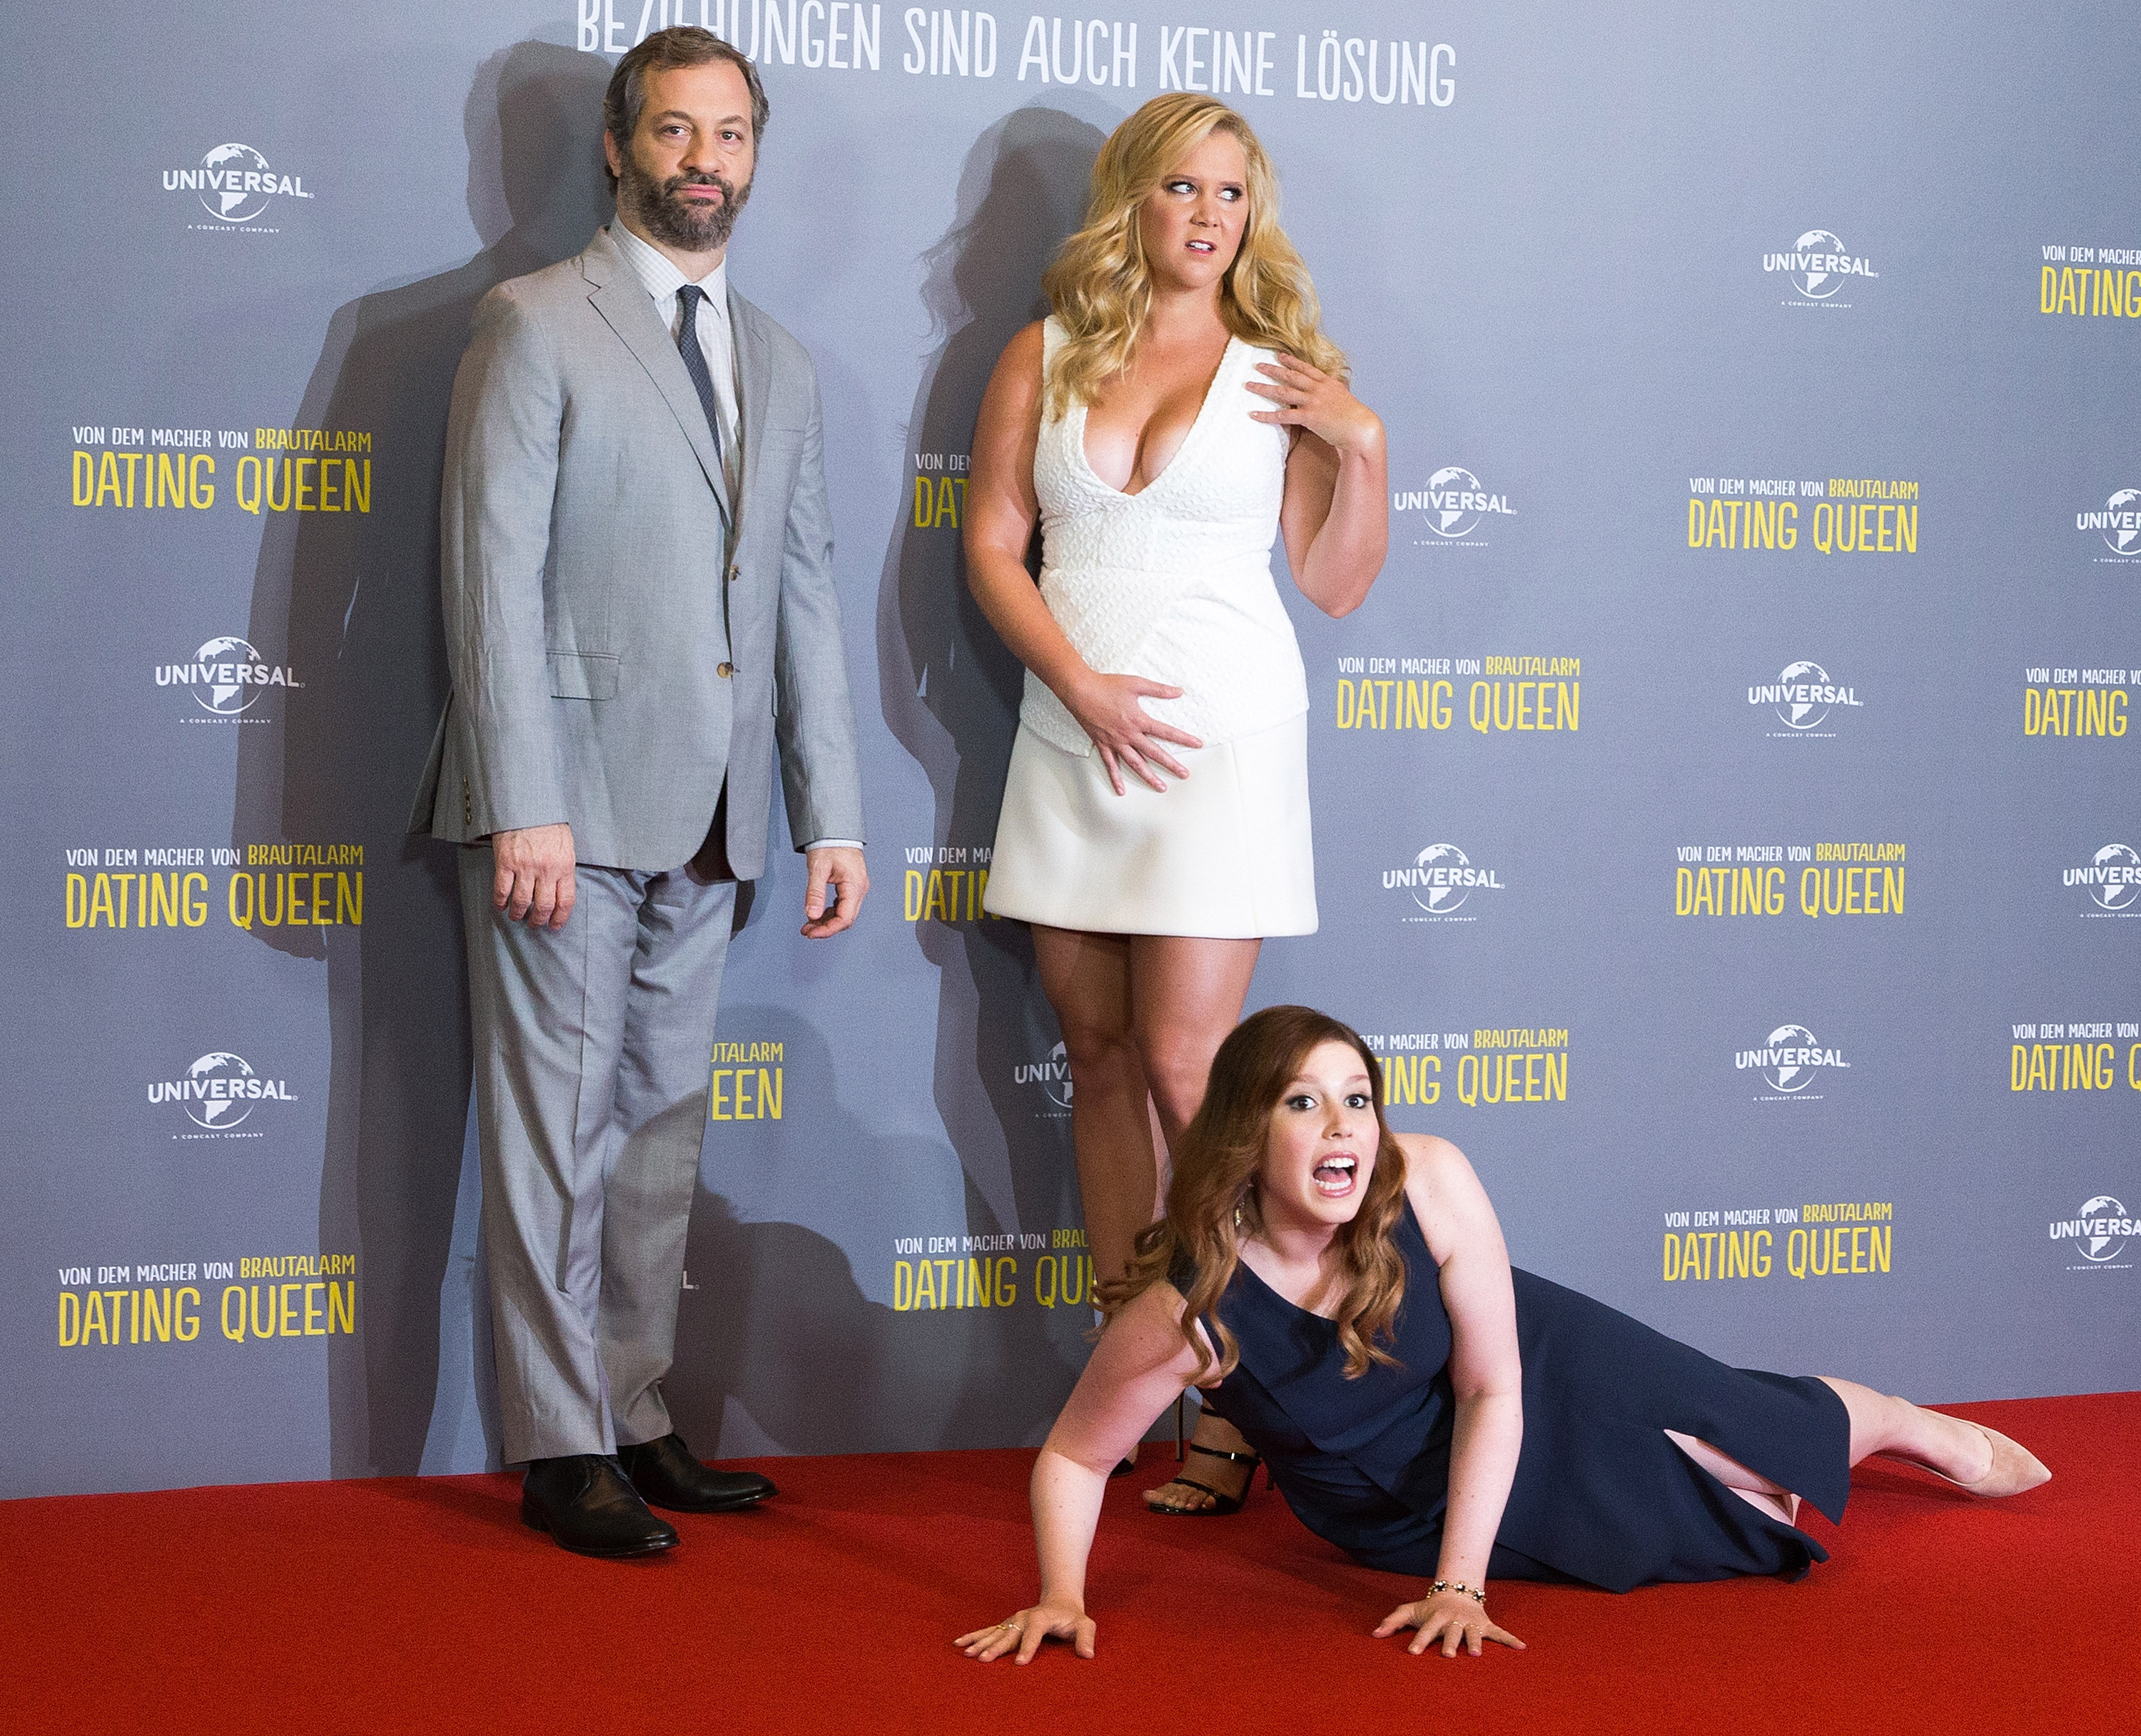 Amy Schumer; Vanessa Bayer and Judd Apatow attend a photo call for the film 'Dating Queen' at Ritz Carlton on August 11, 2015 in Berlin, Germany.